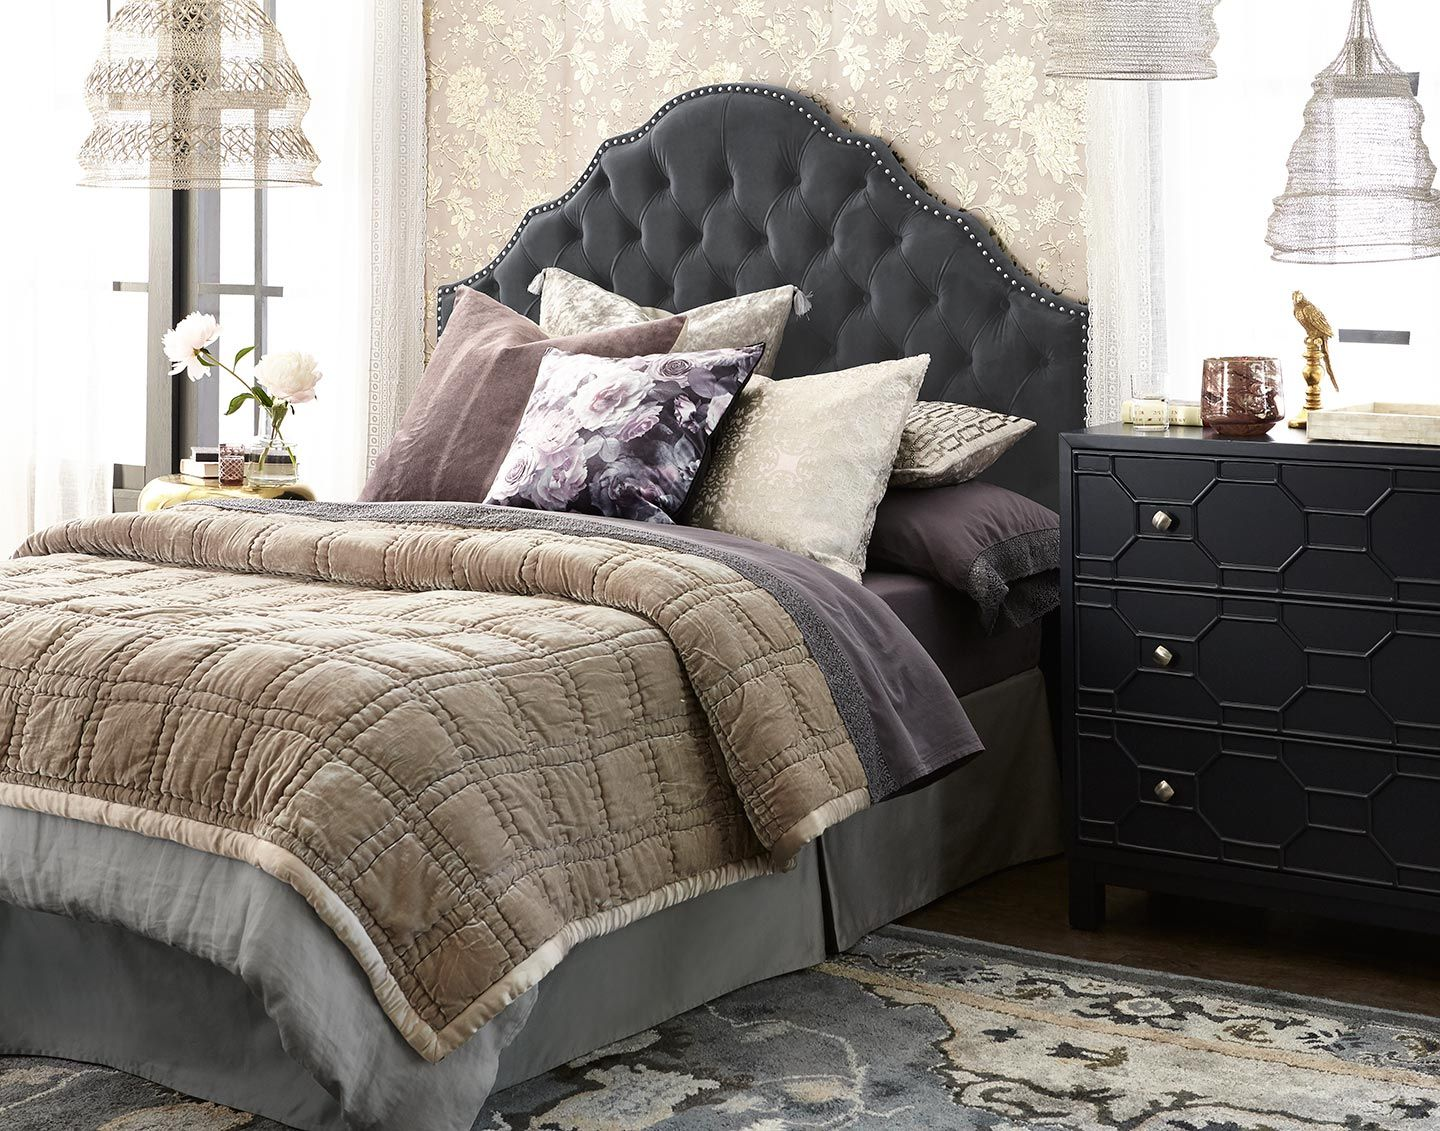 DECORATE AND ENTERTAIN WITH FALL FLAIR Textured bedding